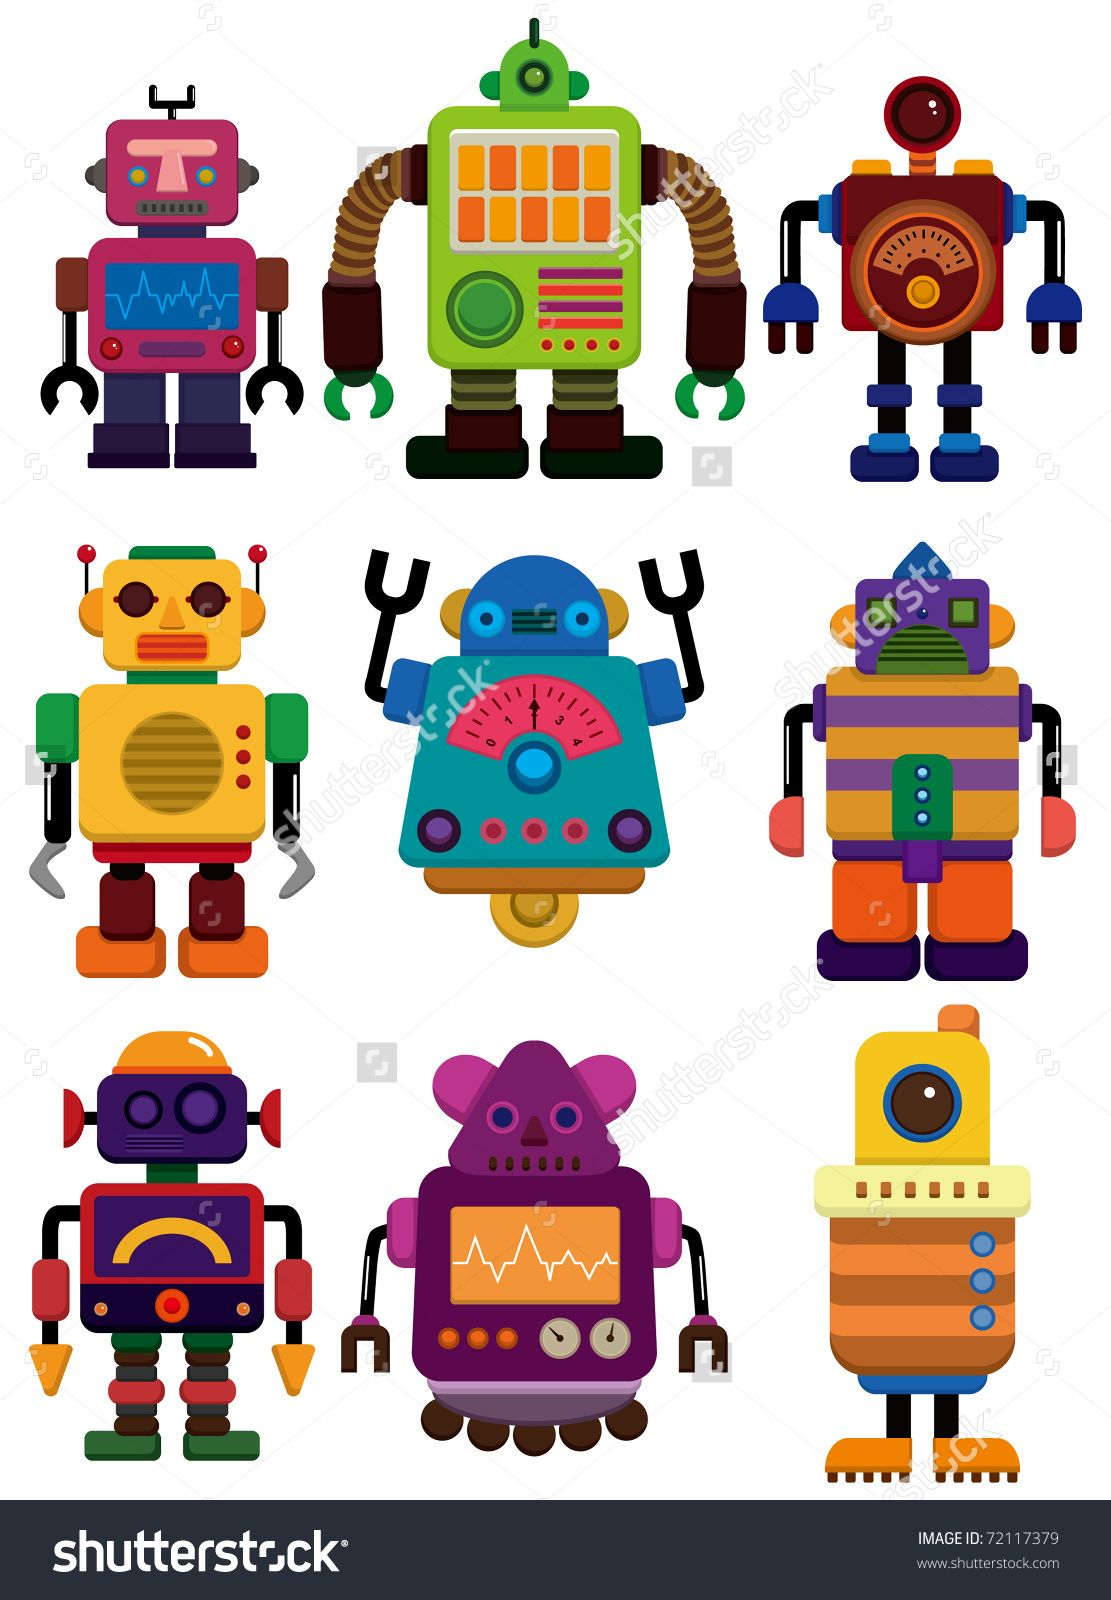 Orange Themed Circuit Board Drawing Vector Clipart Illustration Cartoon Color Robot Icon Kid Stuff Pinterest Images